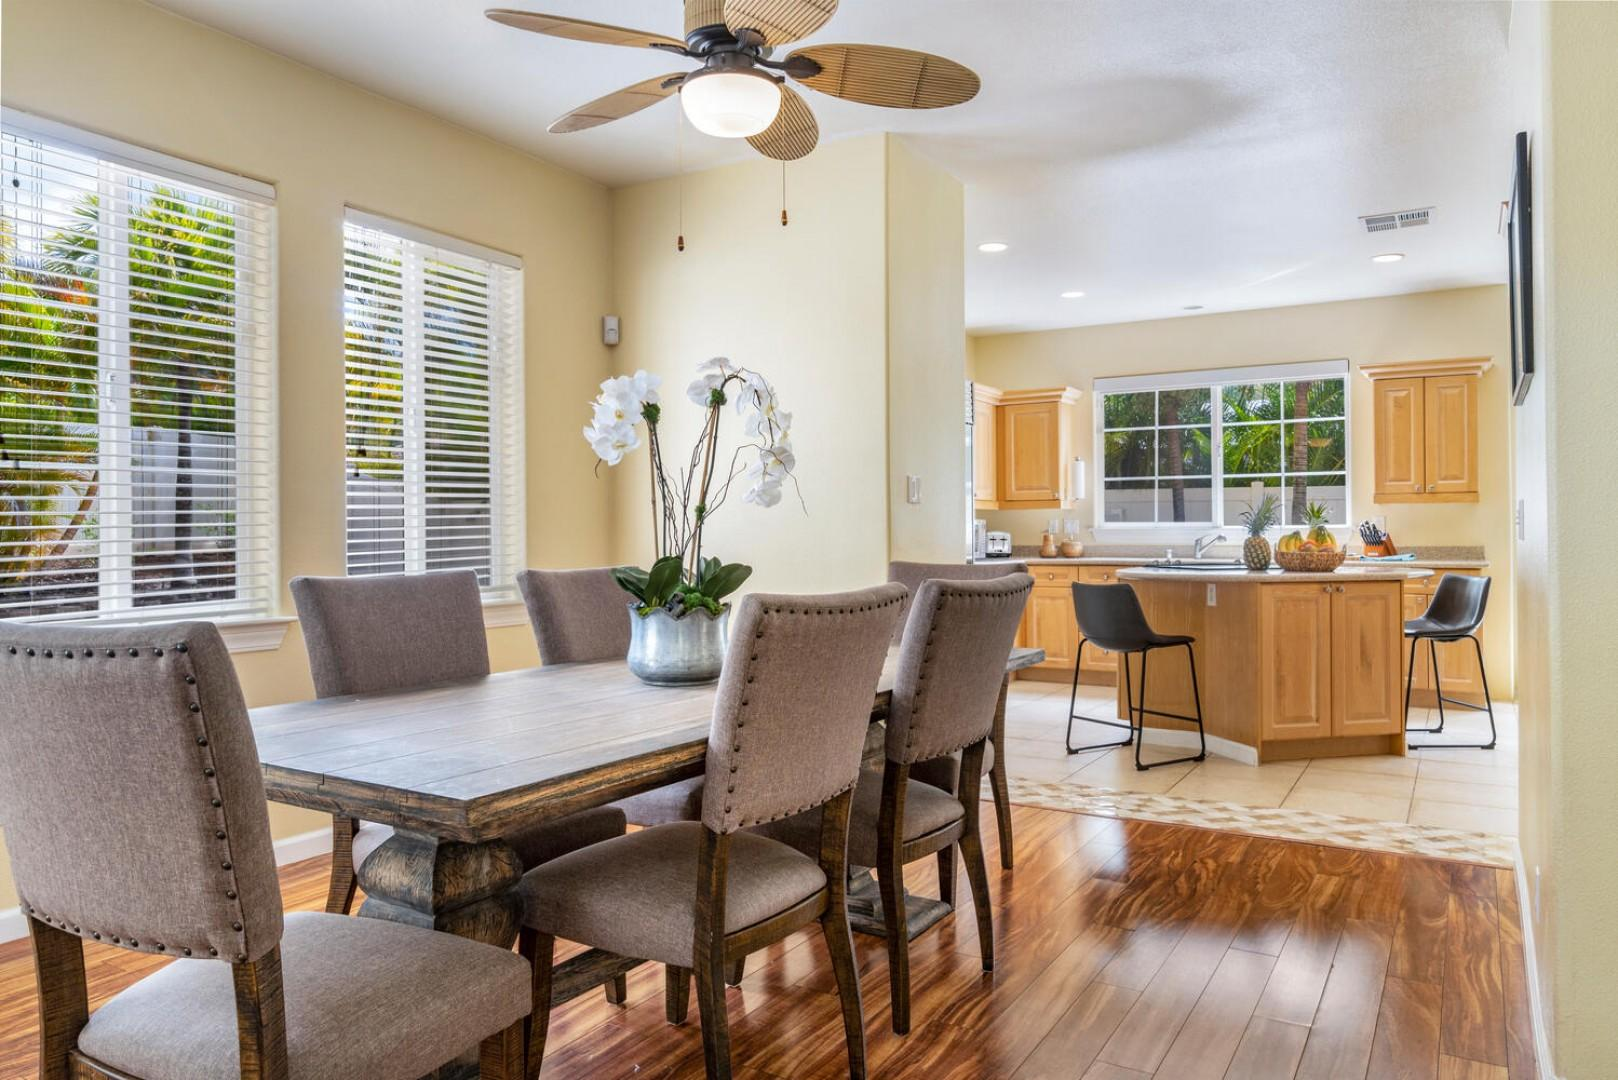 Dining room with open concept to kitchen